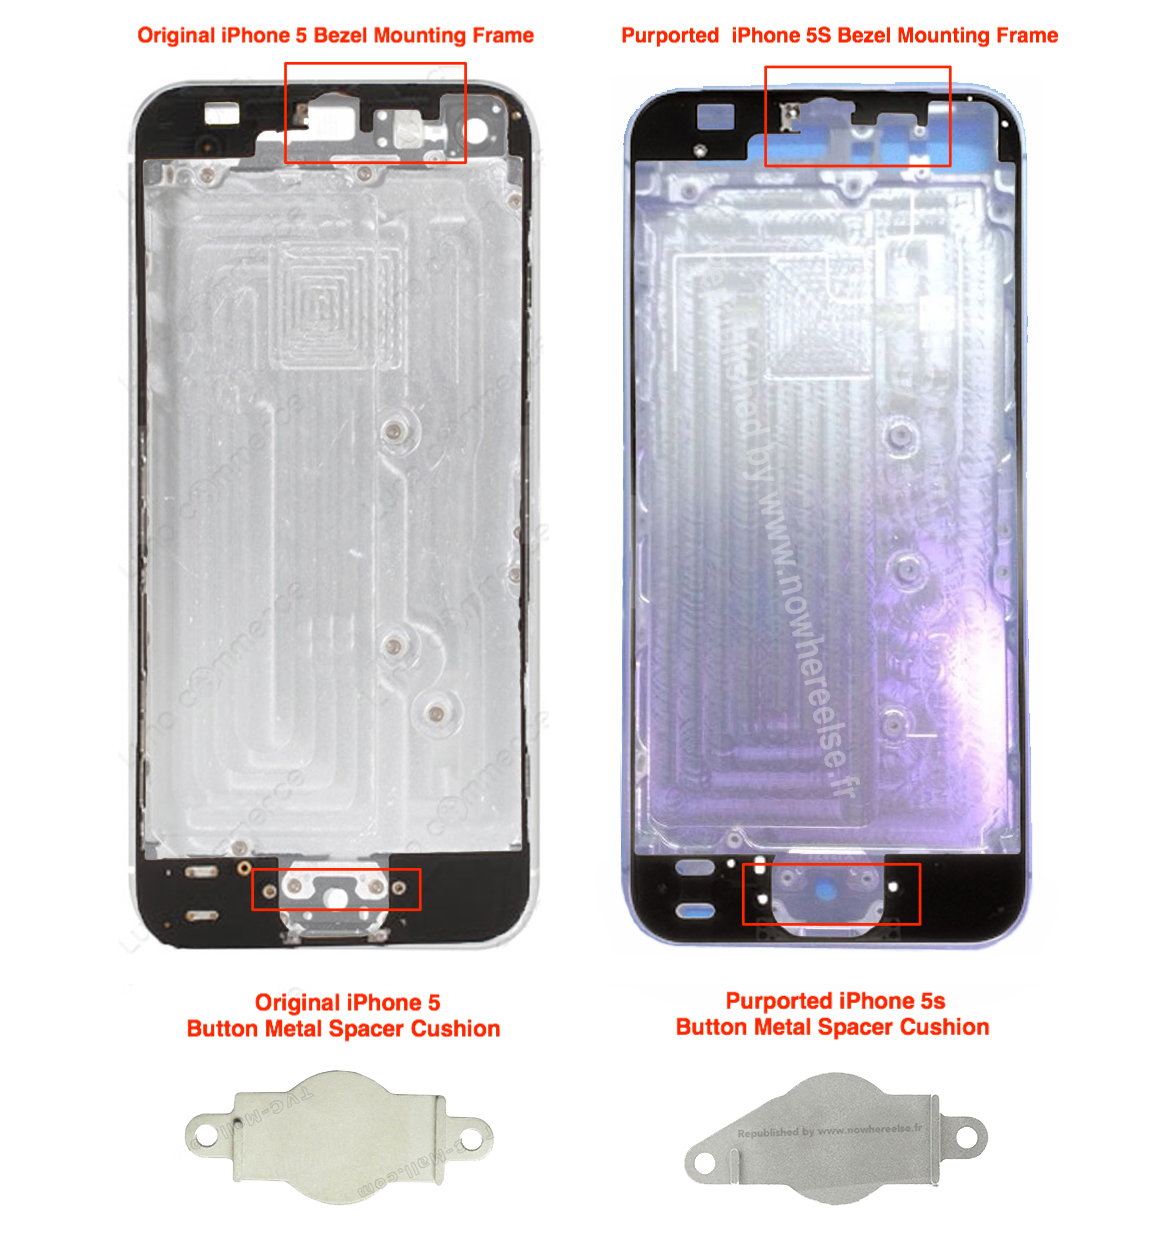 iPhone 5S (back shell, NowhereElse 003)